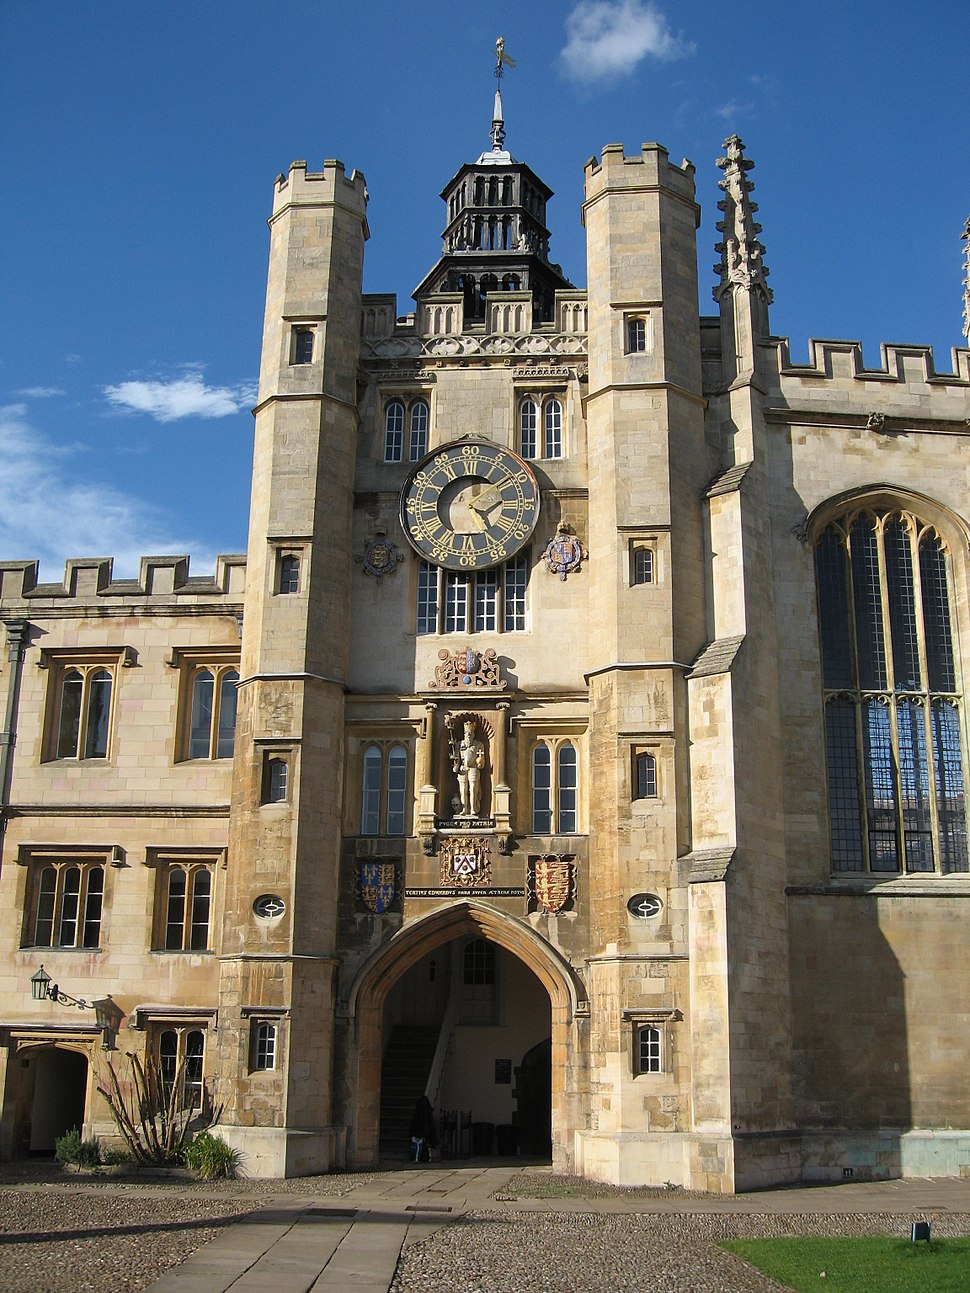 Clock Tower, Great Court, Trinity College, Cambridge